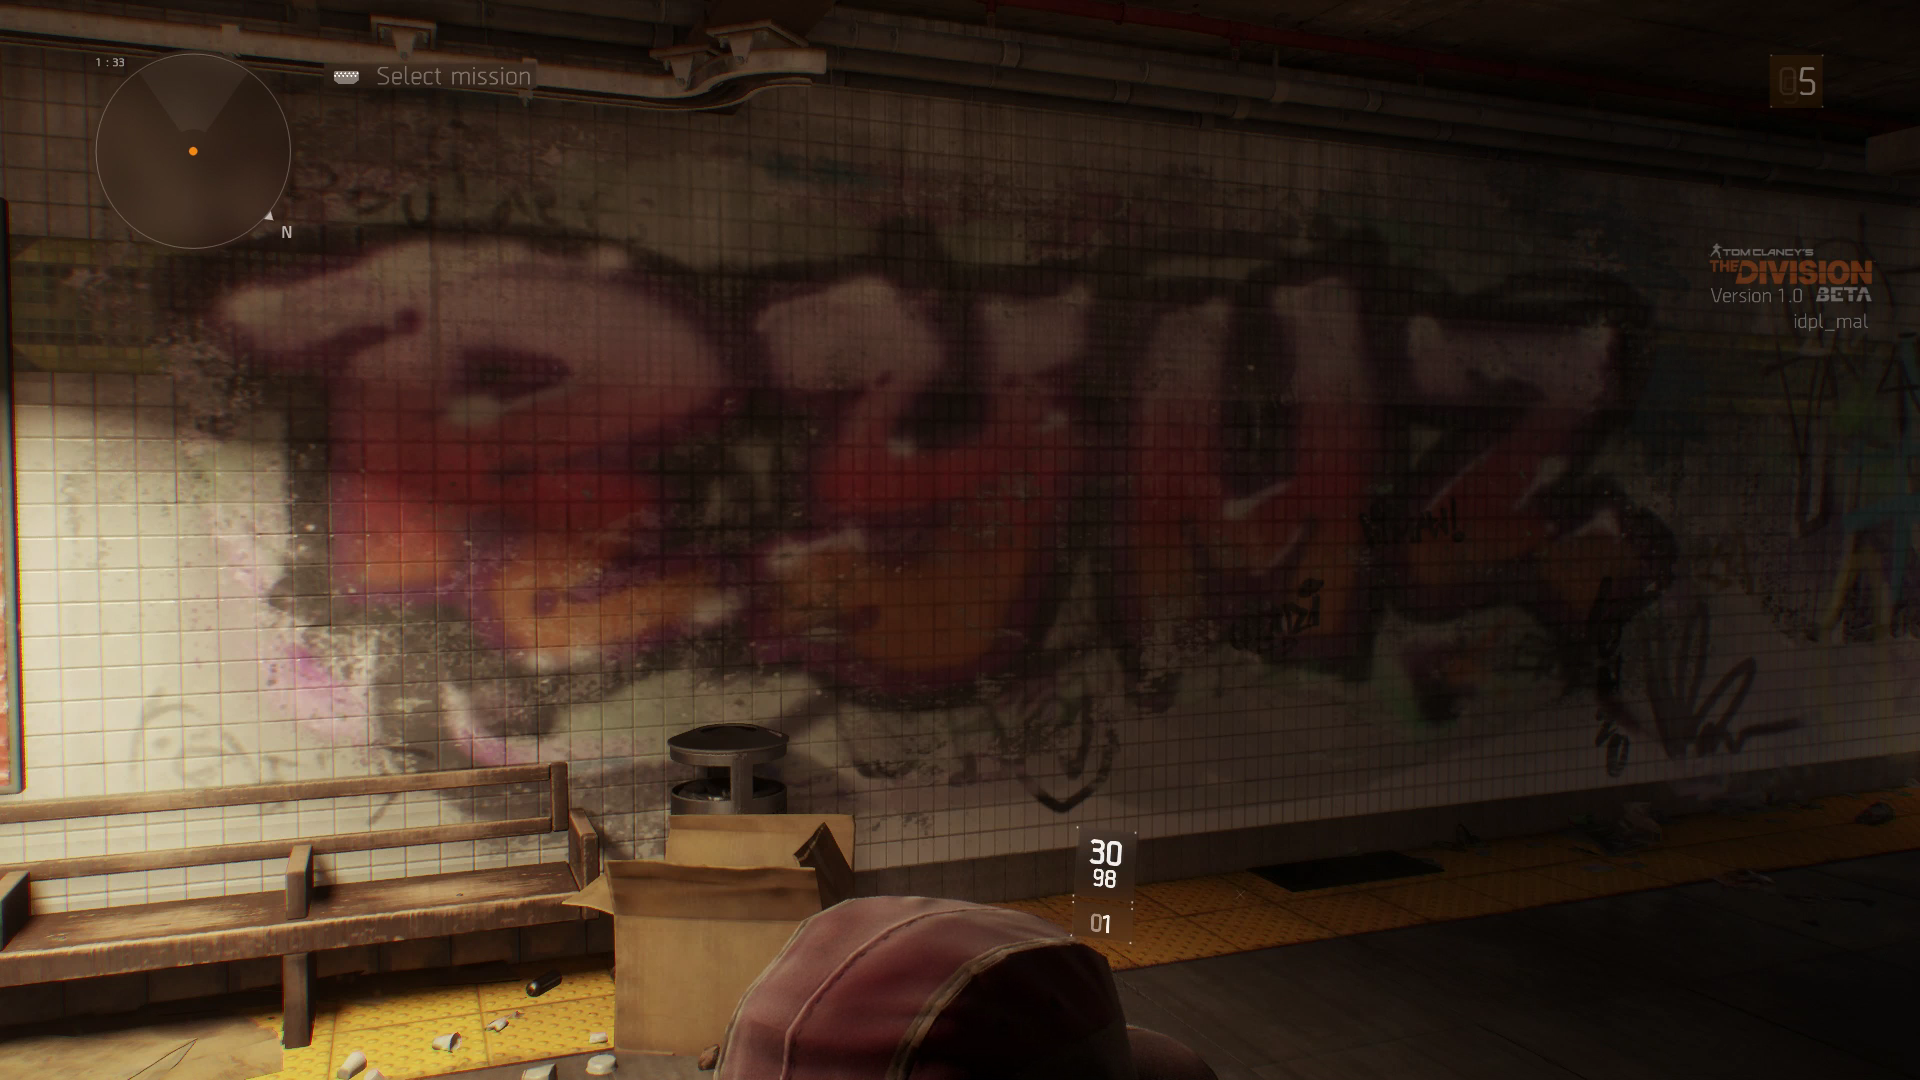 Good Job With The Graffiti, The Division